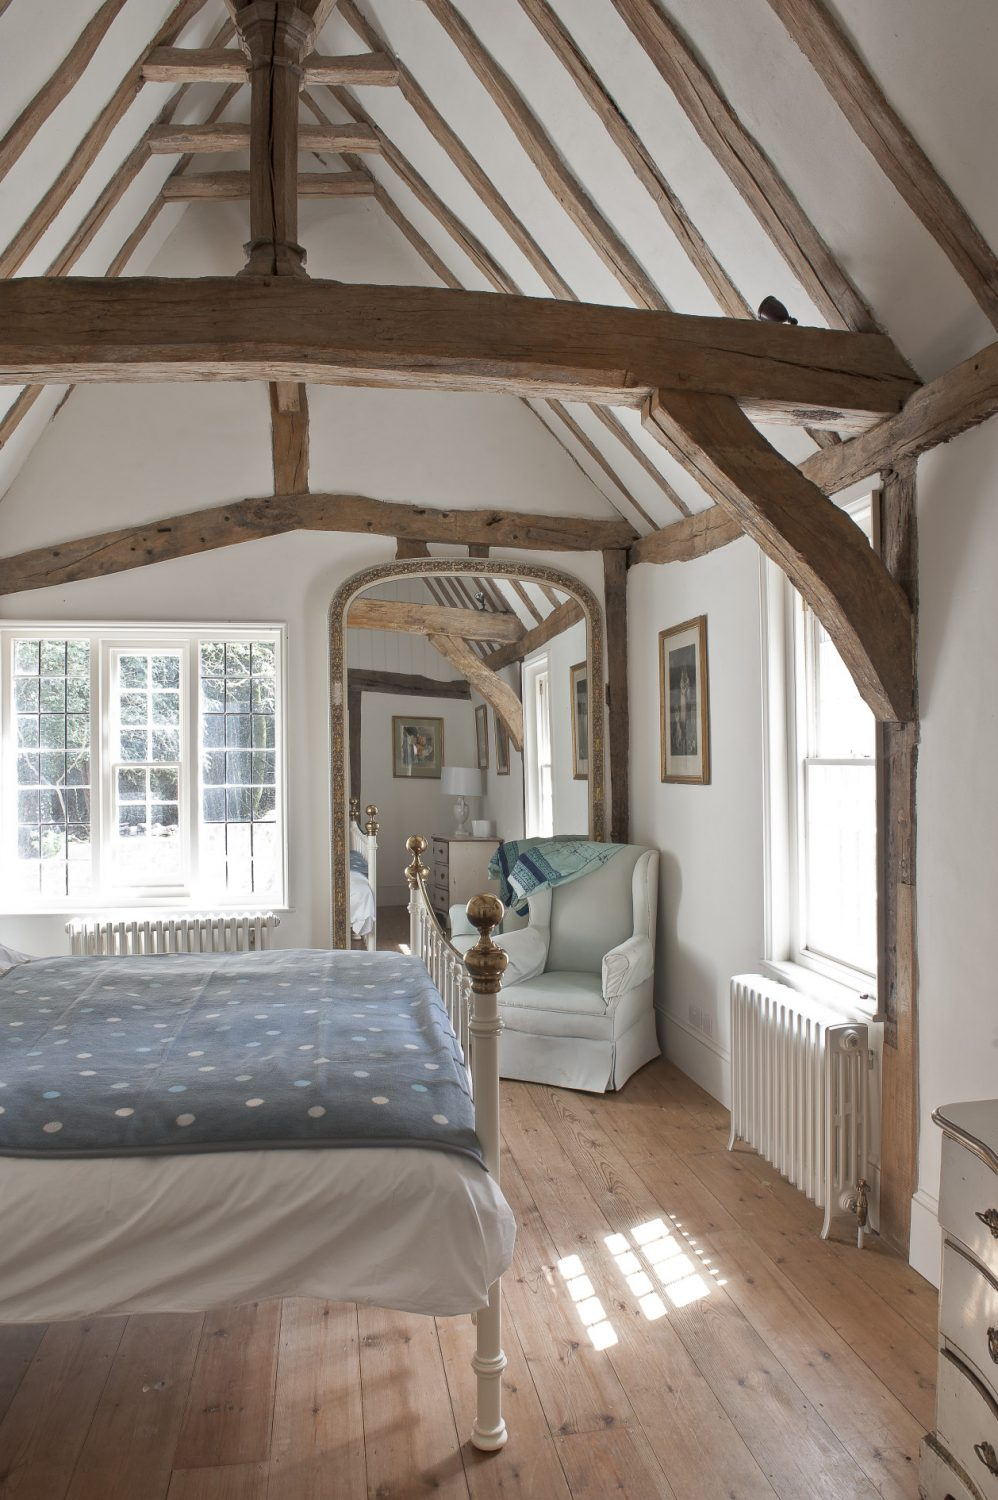 The room beyond is the bedroom where the warm, honey coloured timbers are offset by fresh blue and white linens on the bed and armchair